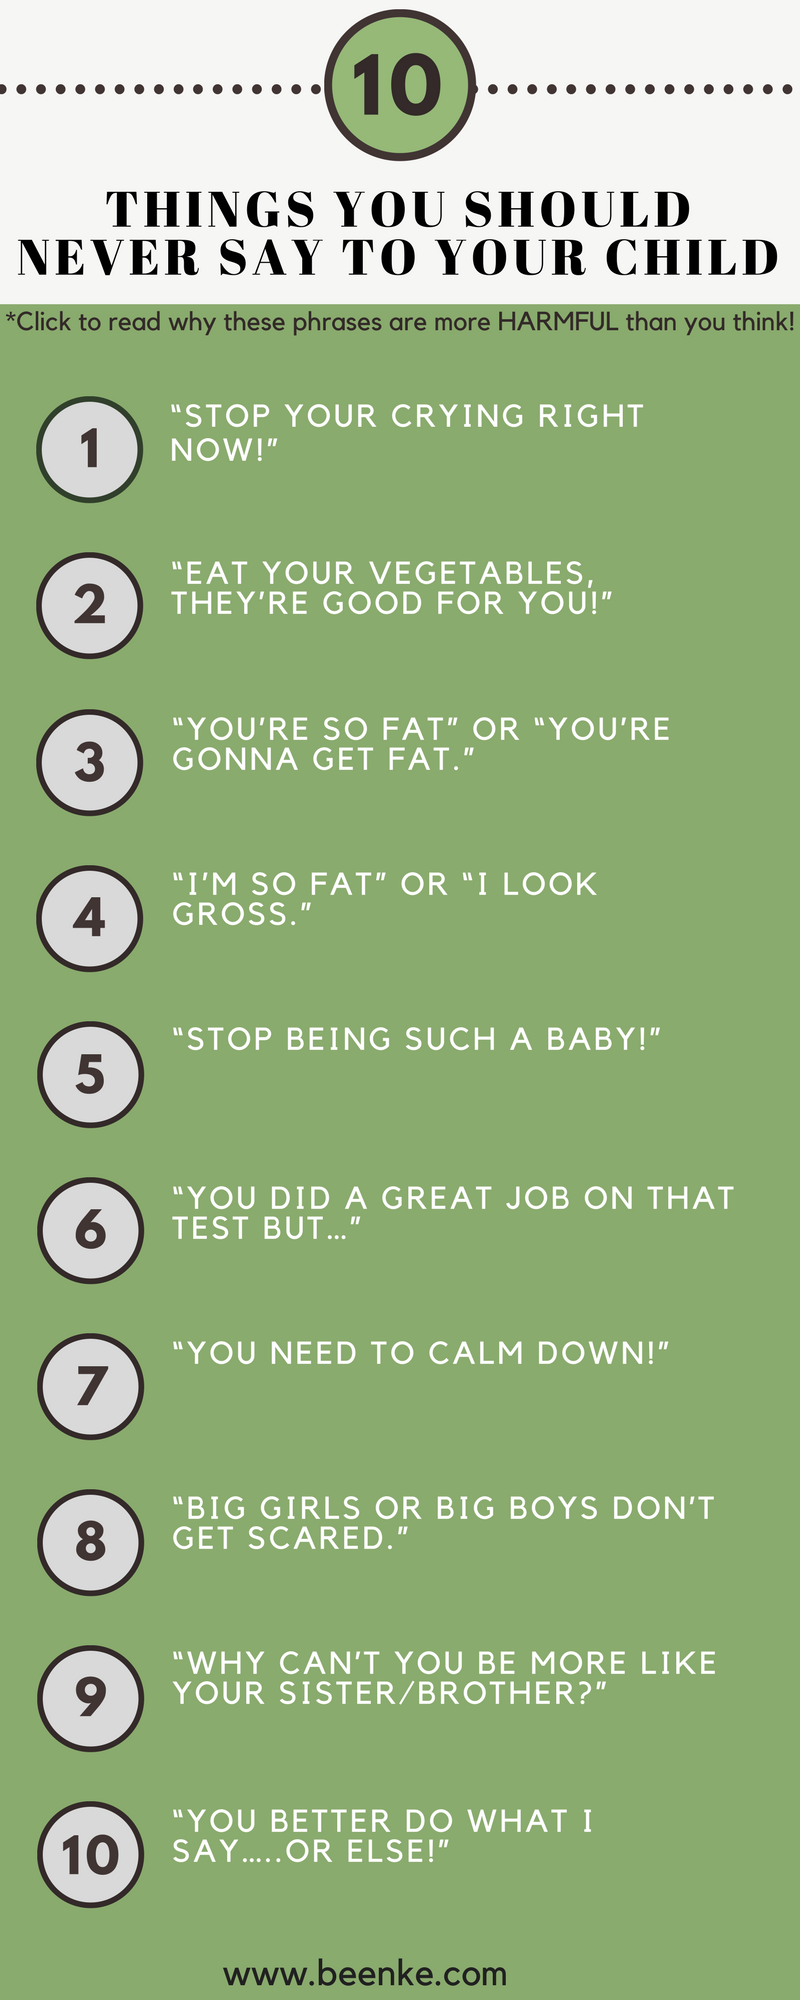 things you should not do